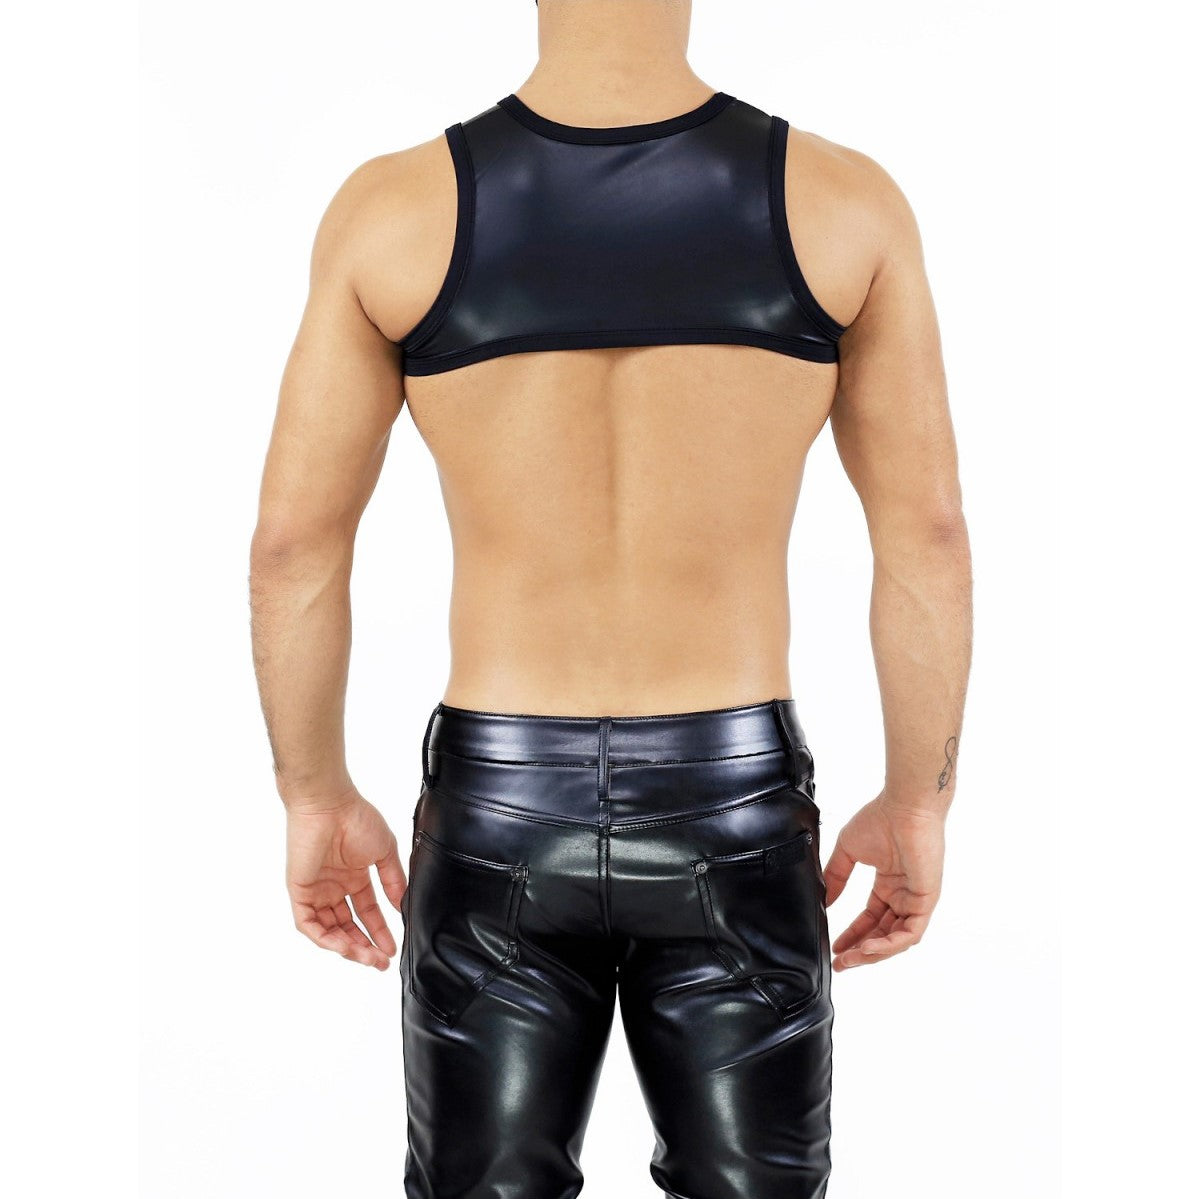 TOF Deri harness black